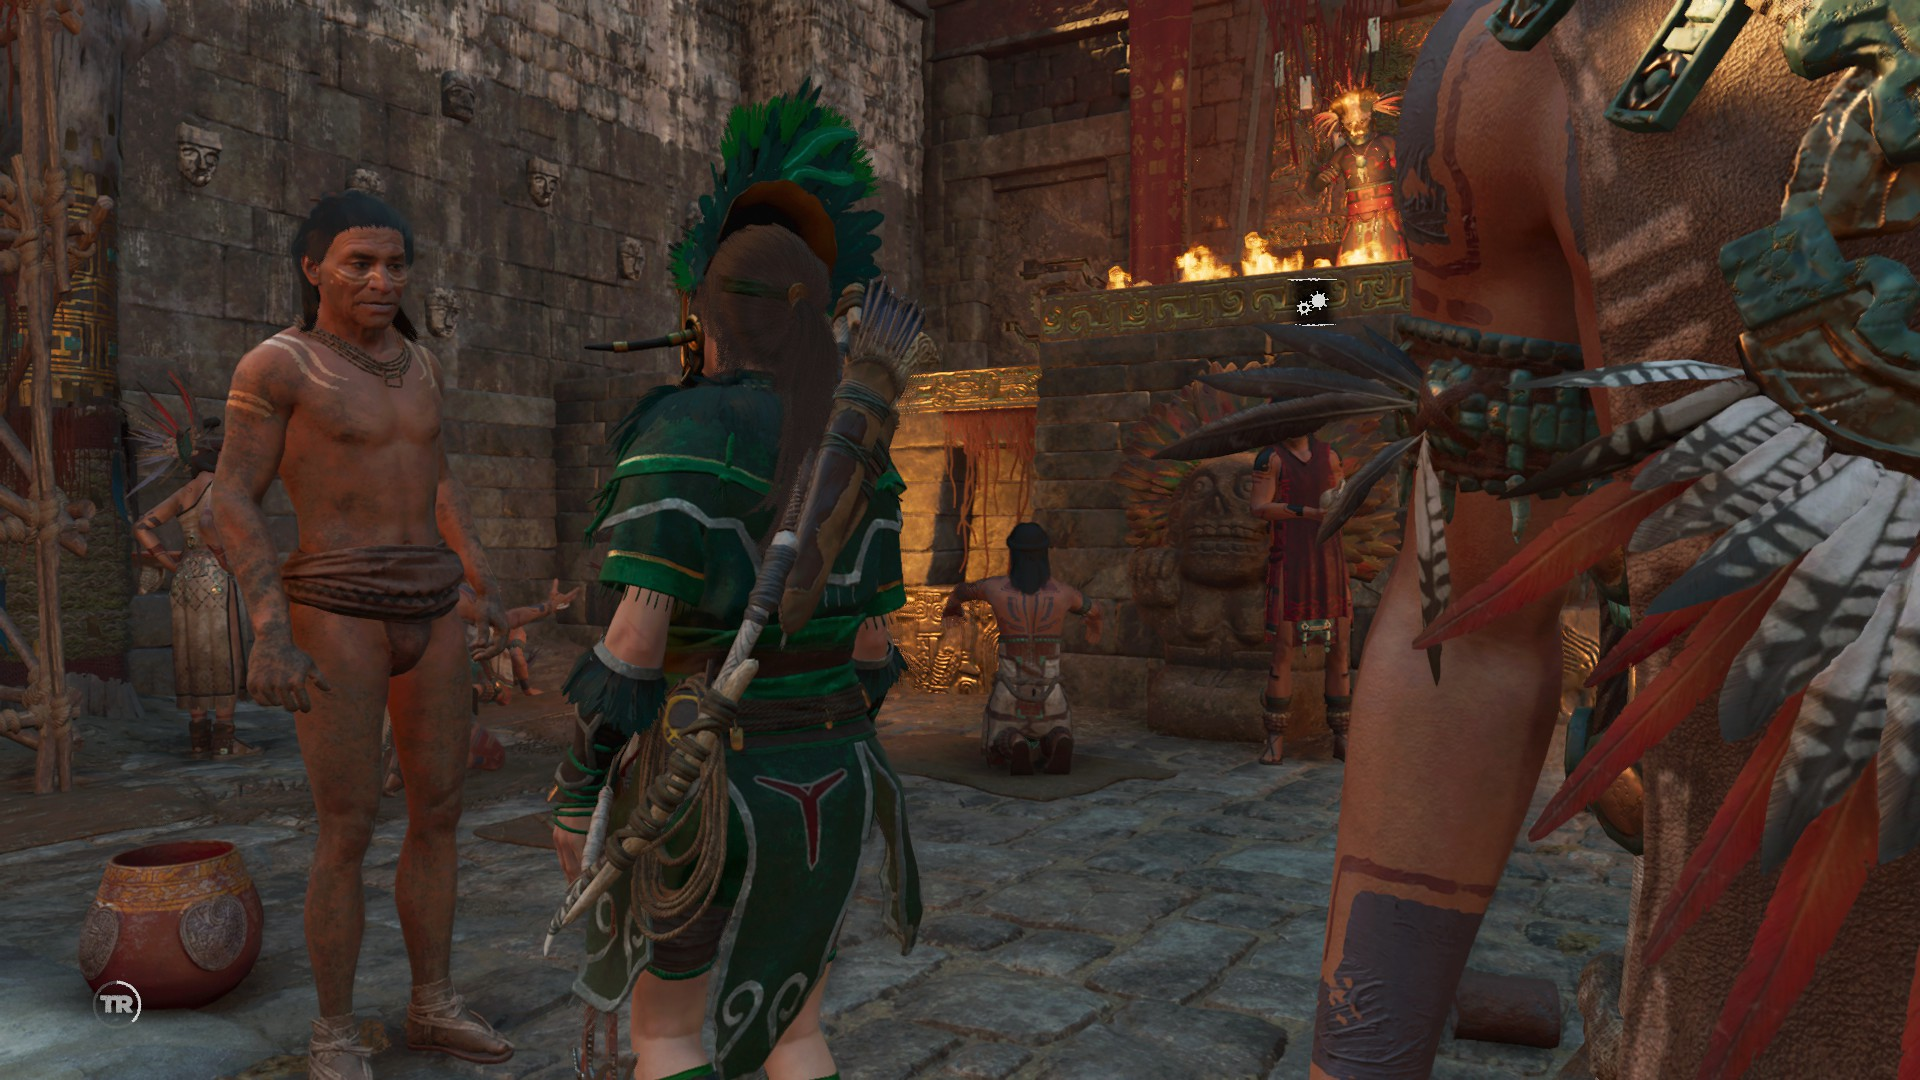 Lara talking to a rebel in the temple area.